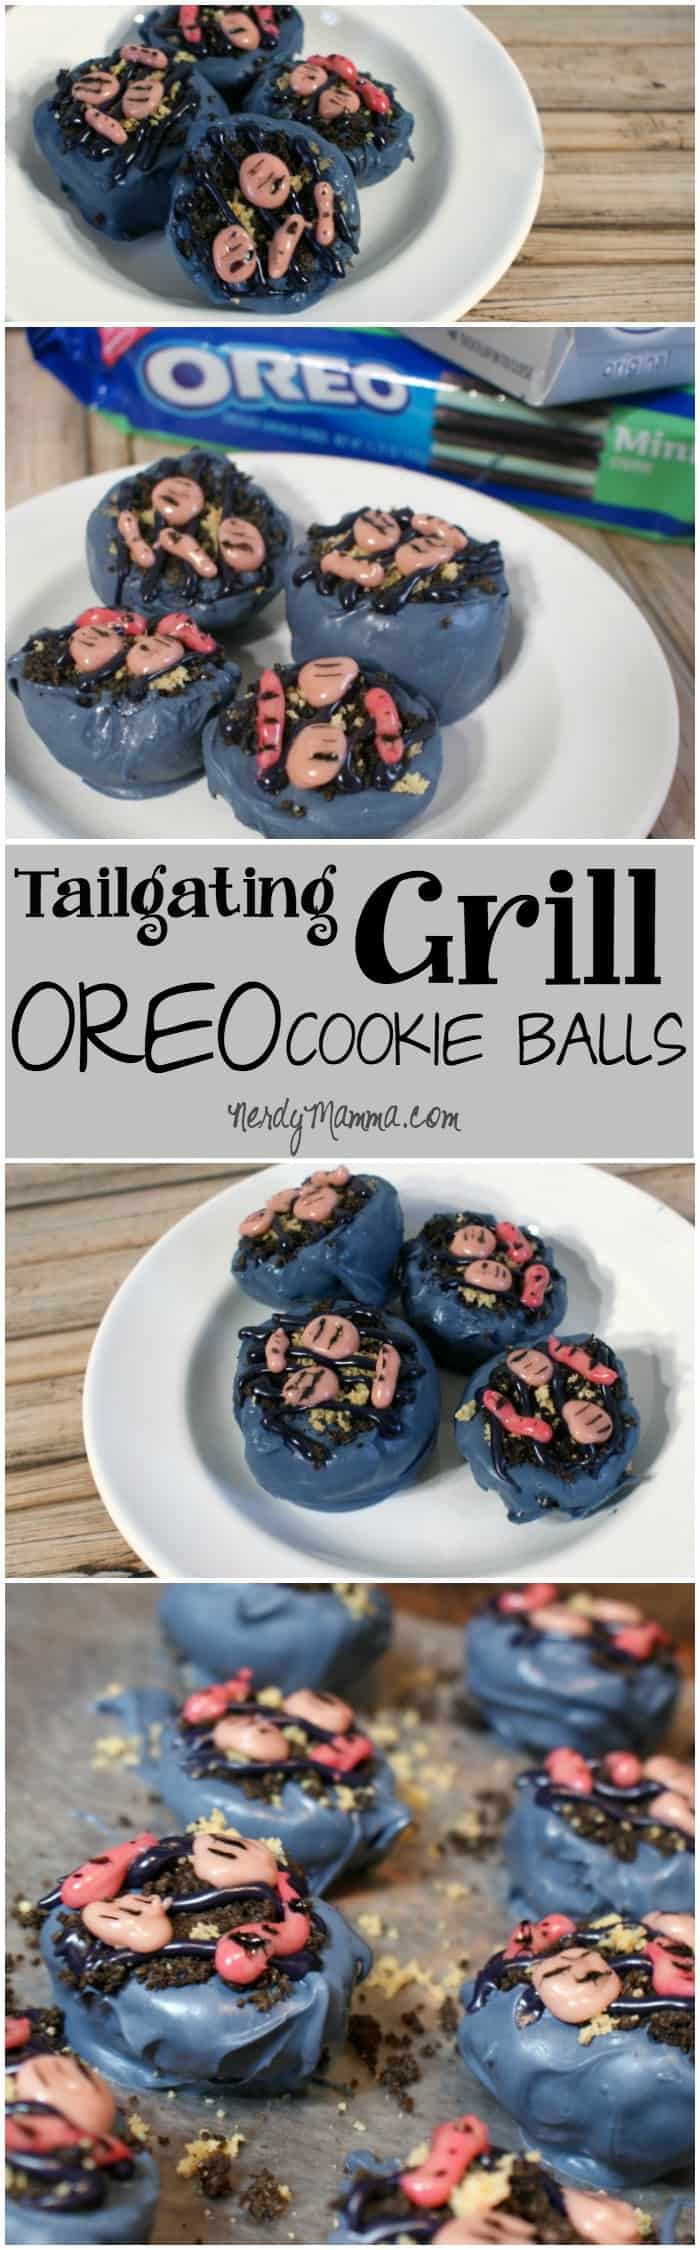 I took these ridiculously cute OREO Cookie Ball grills to a tailgating party and everyone LOVED them! Yummy snack with cute decorations...the whole party wanted more! LOL!